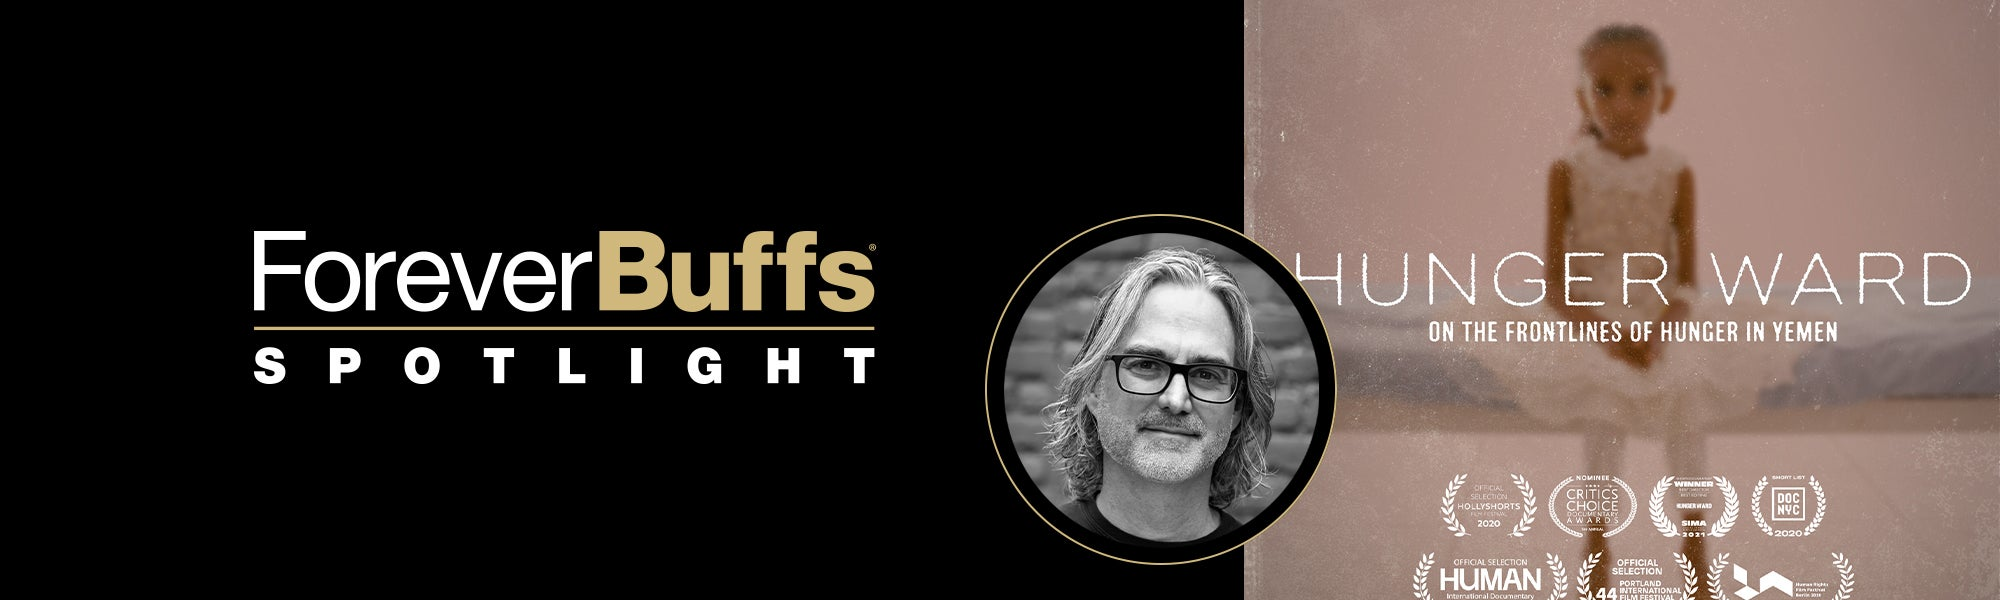 Forever Buffs Spotlight featuring Hunger Ward movie poster and headshot of Michael Scheuerman